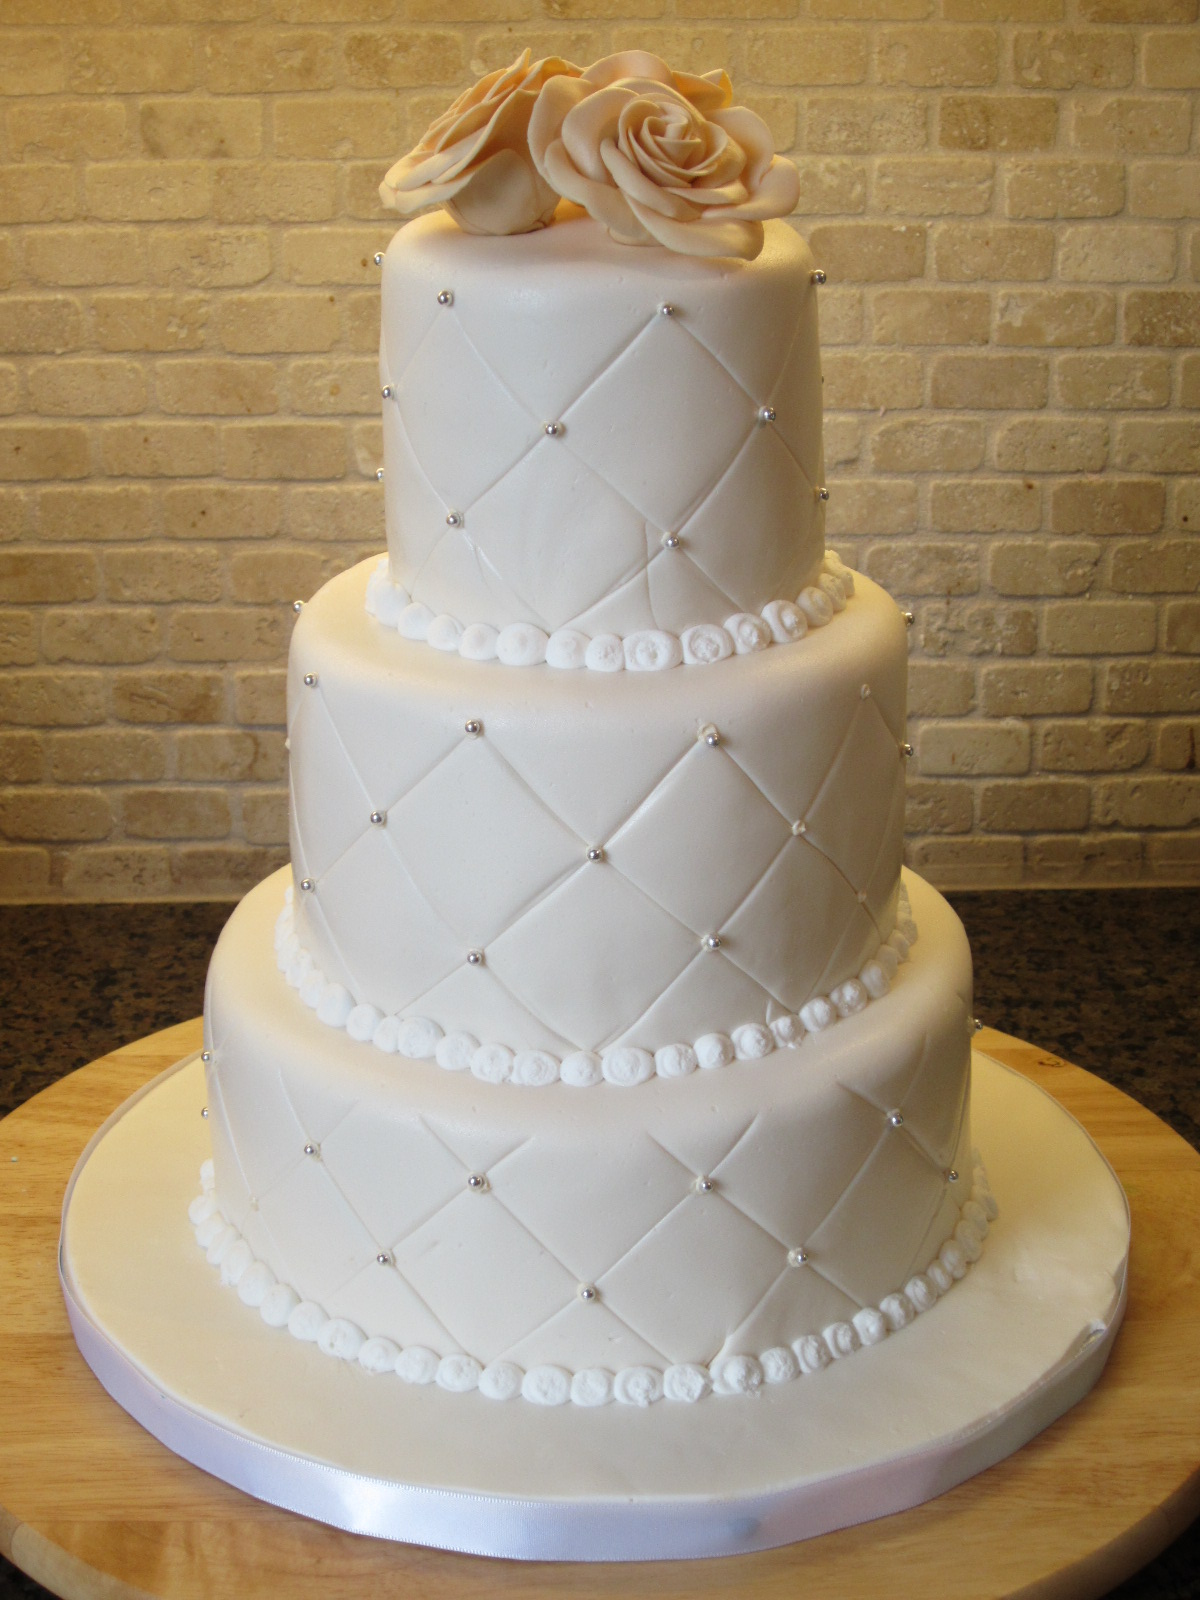 Wedding Cake 2 Simple And Elegant Three Tier White Round